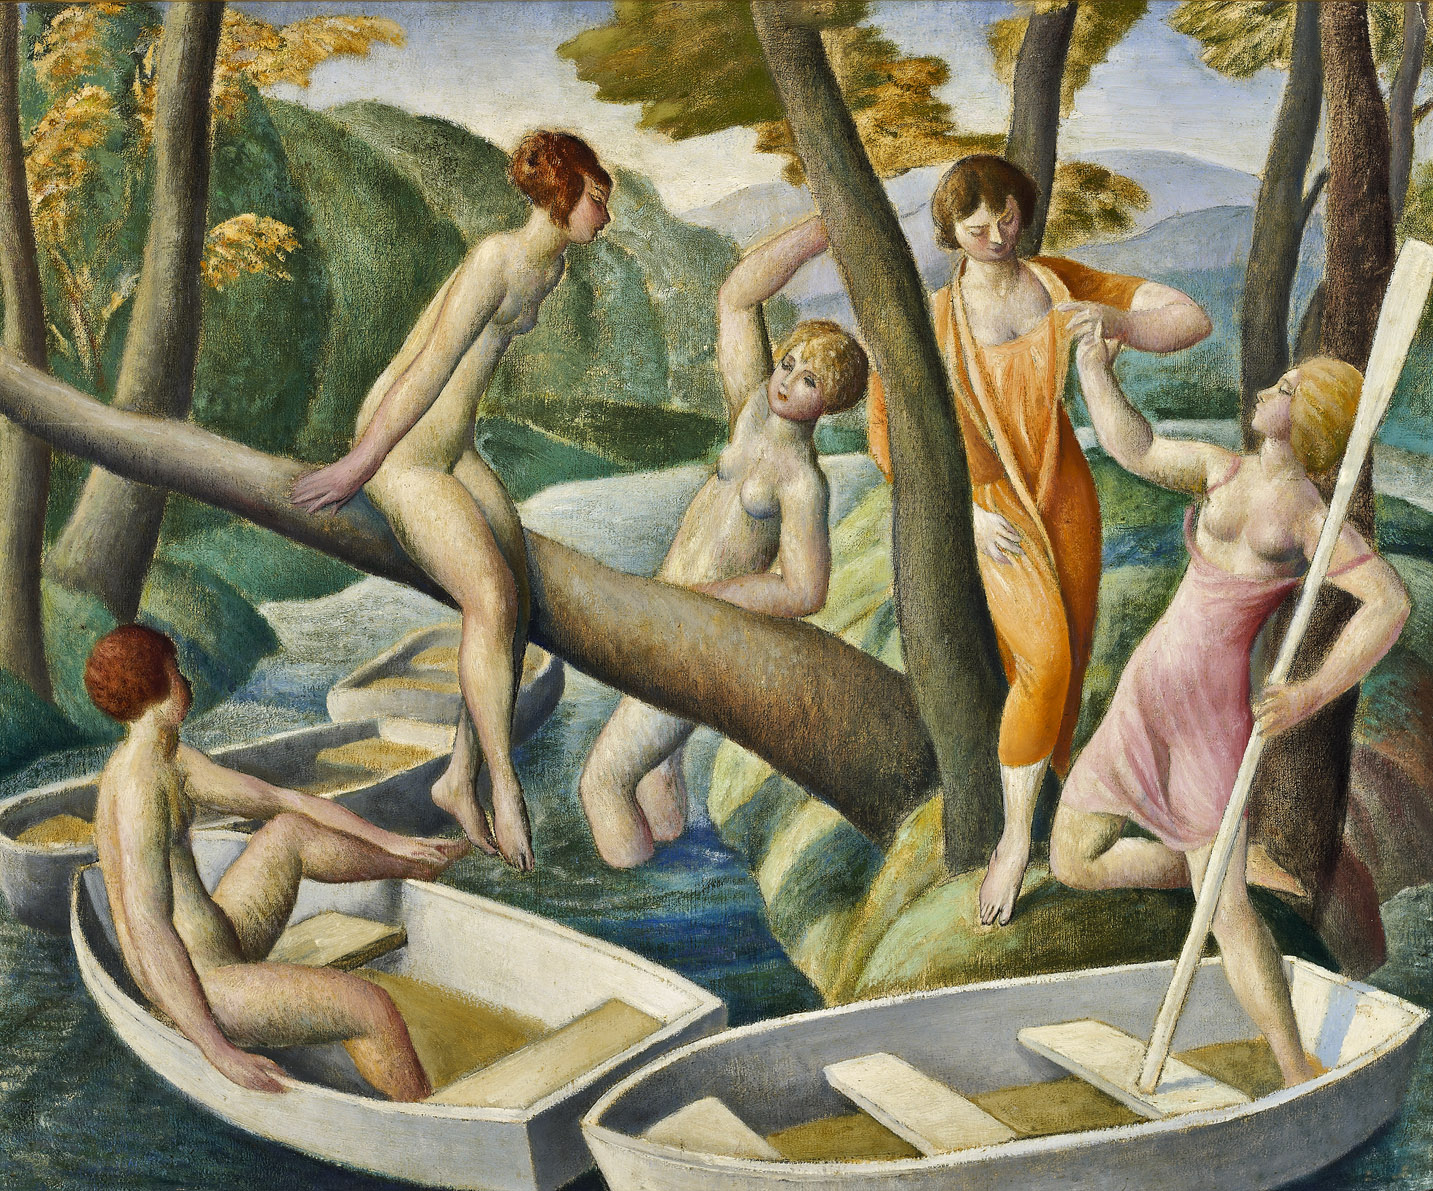 Boaters , 1924  oil on canvas 20 x 24 inches; 50.8 x 61 centimeters